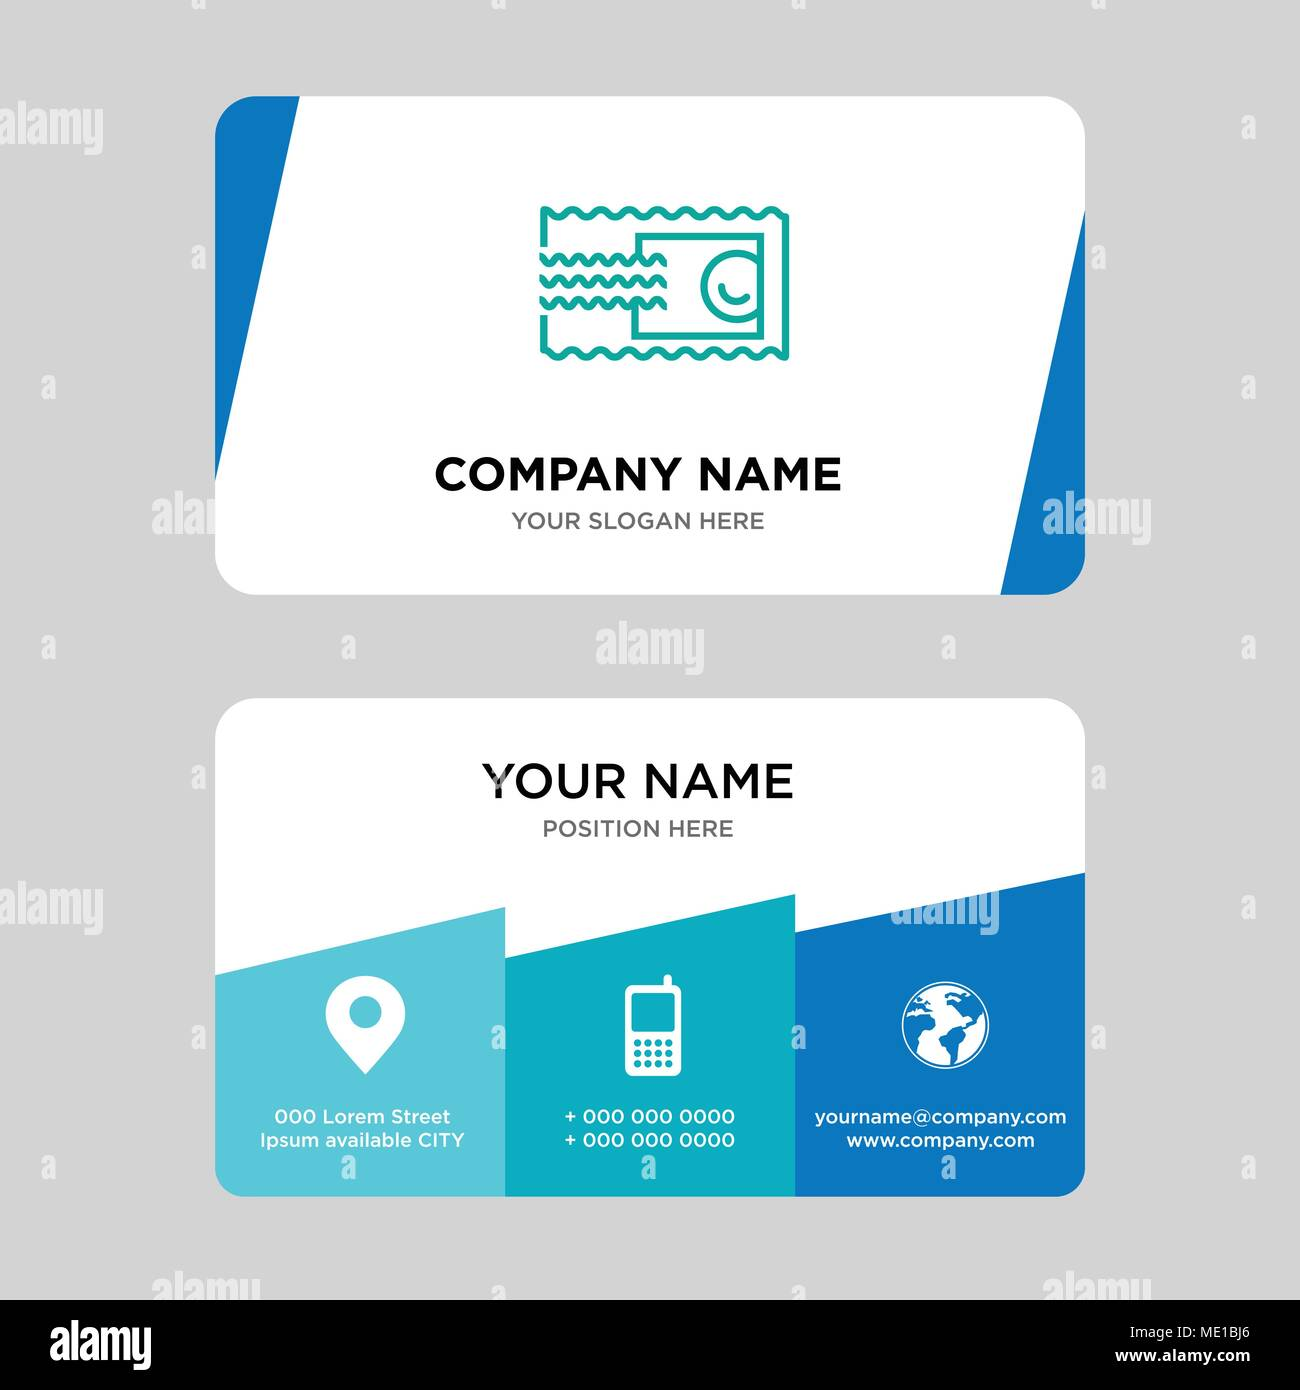 Stamp business card design template, Visiting for your company ...